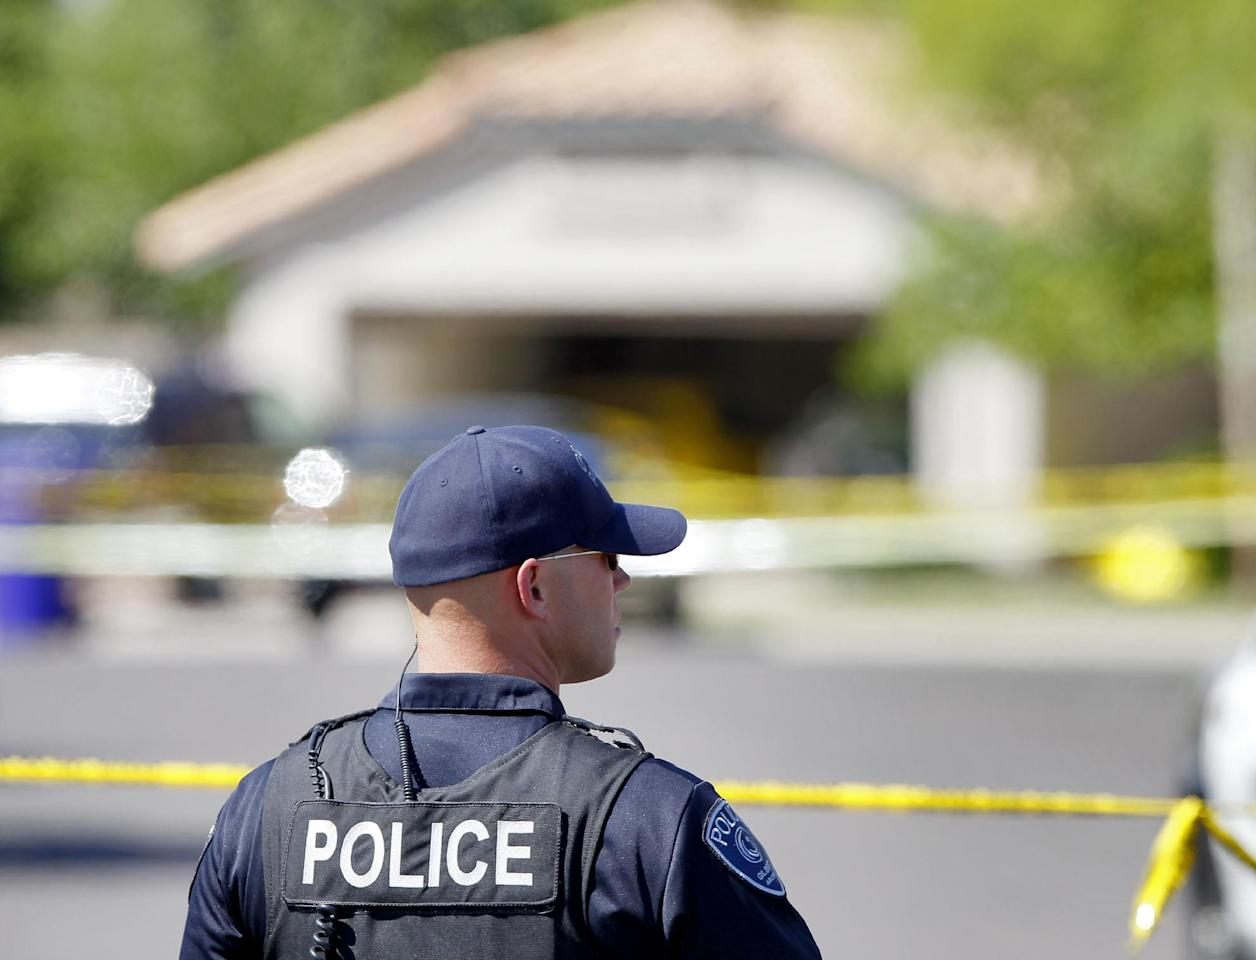 A Gilbert police officer stands outside the police tape outside a crime scene Wednesday, May 2, 2012 in Gilbert, Ariz. Police in the Phoenix suburb of Gilbert say a man shot and killed four people, including a toddler, before killing himself. (AP Photo/Matt York)